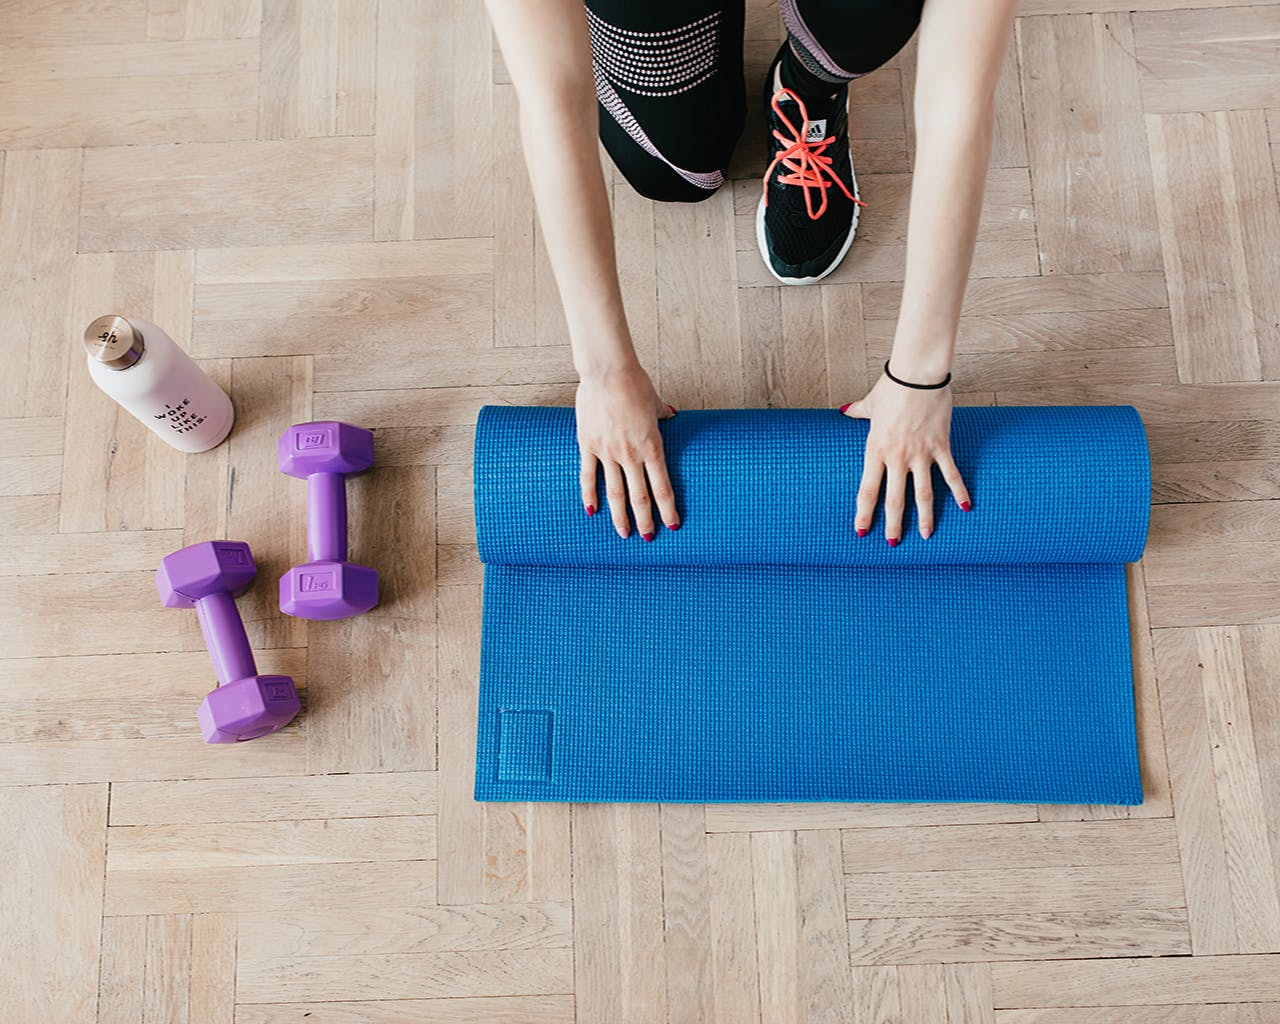 Build Your Own Gym At Home For Less Than Php 3,500